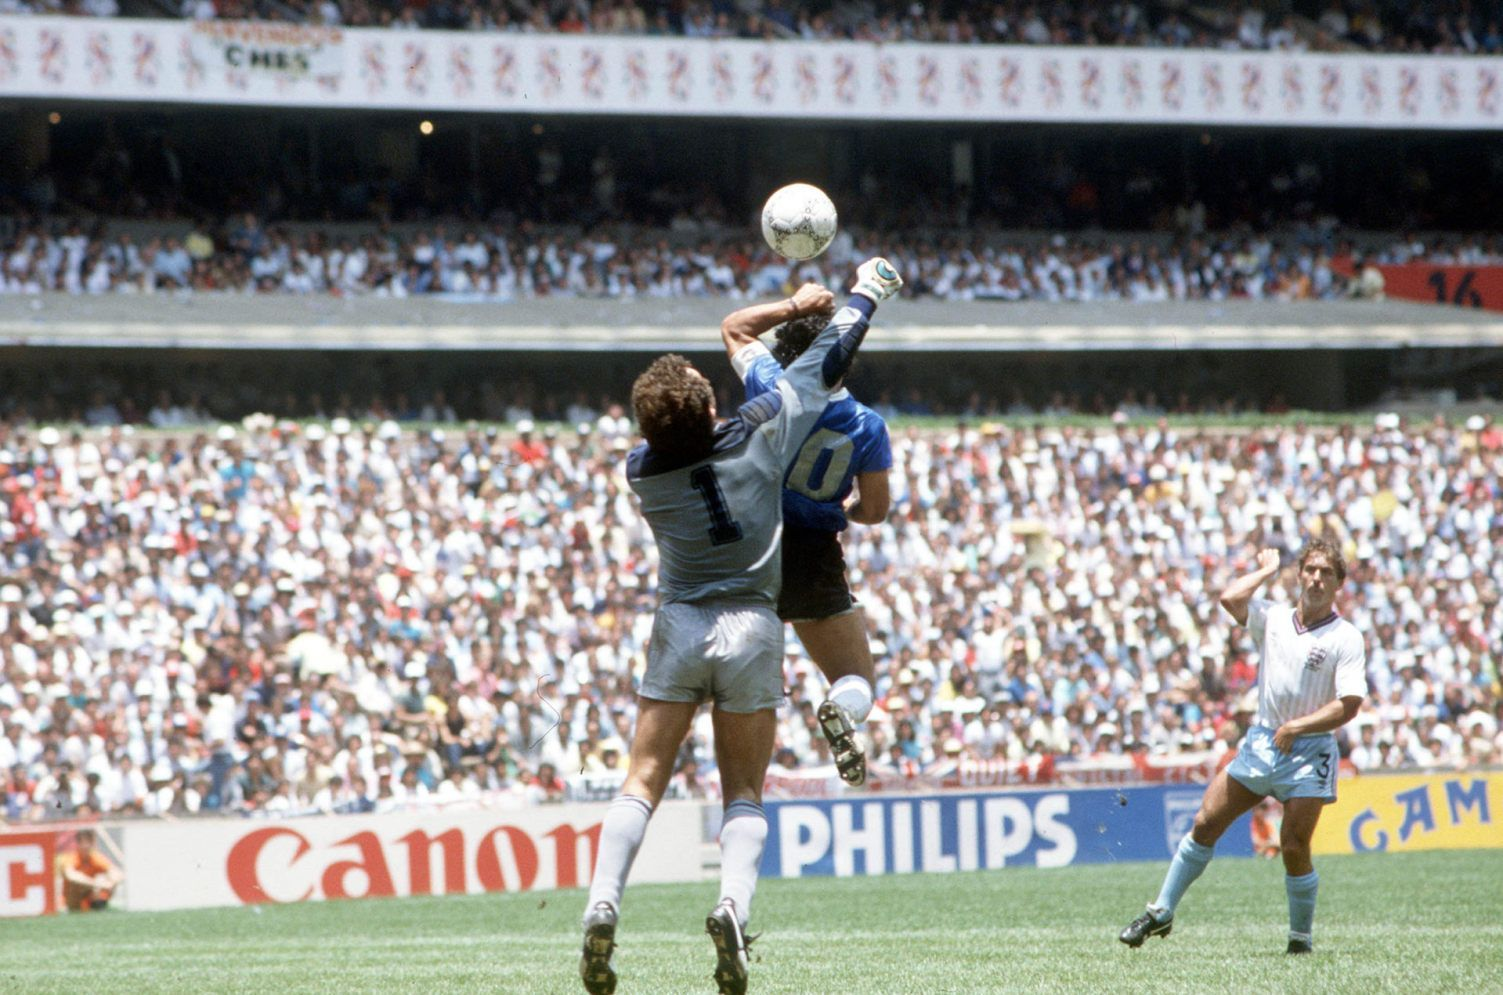 Maradona Reunites With the Ref That Made the Hand of God Goal Possible